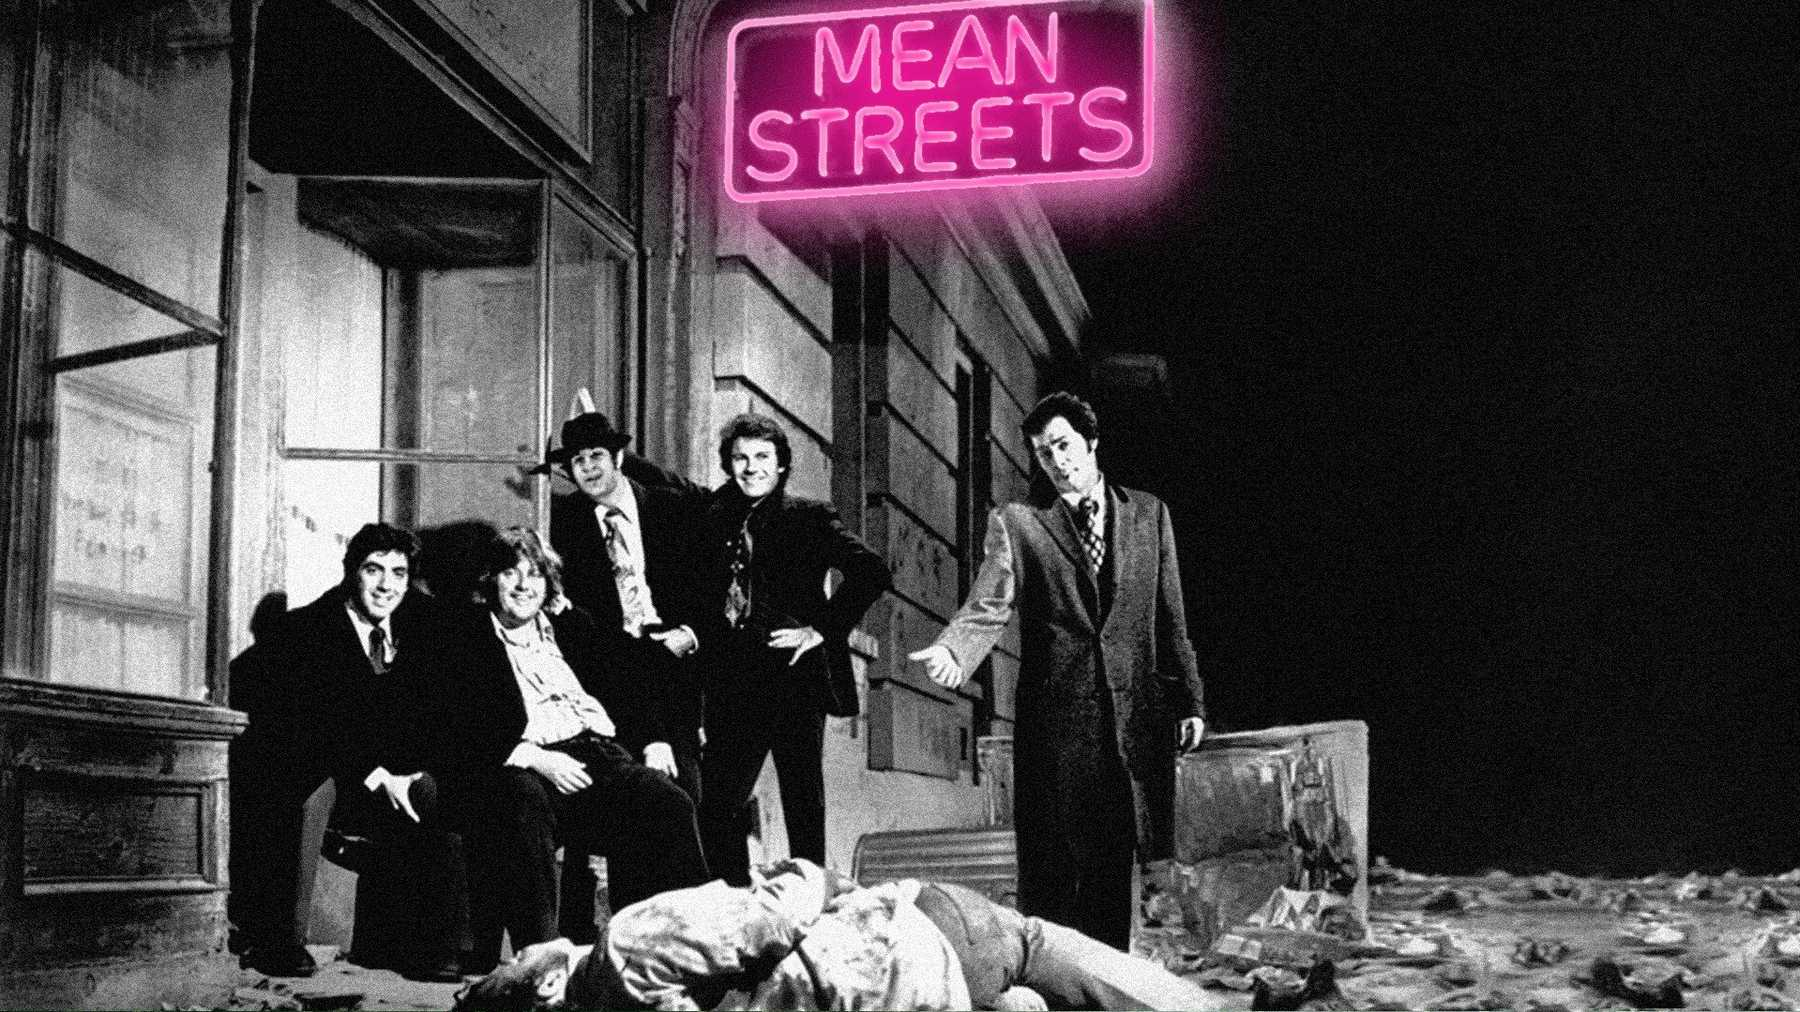 Mean Streets Review | Movie - Empire